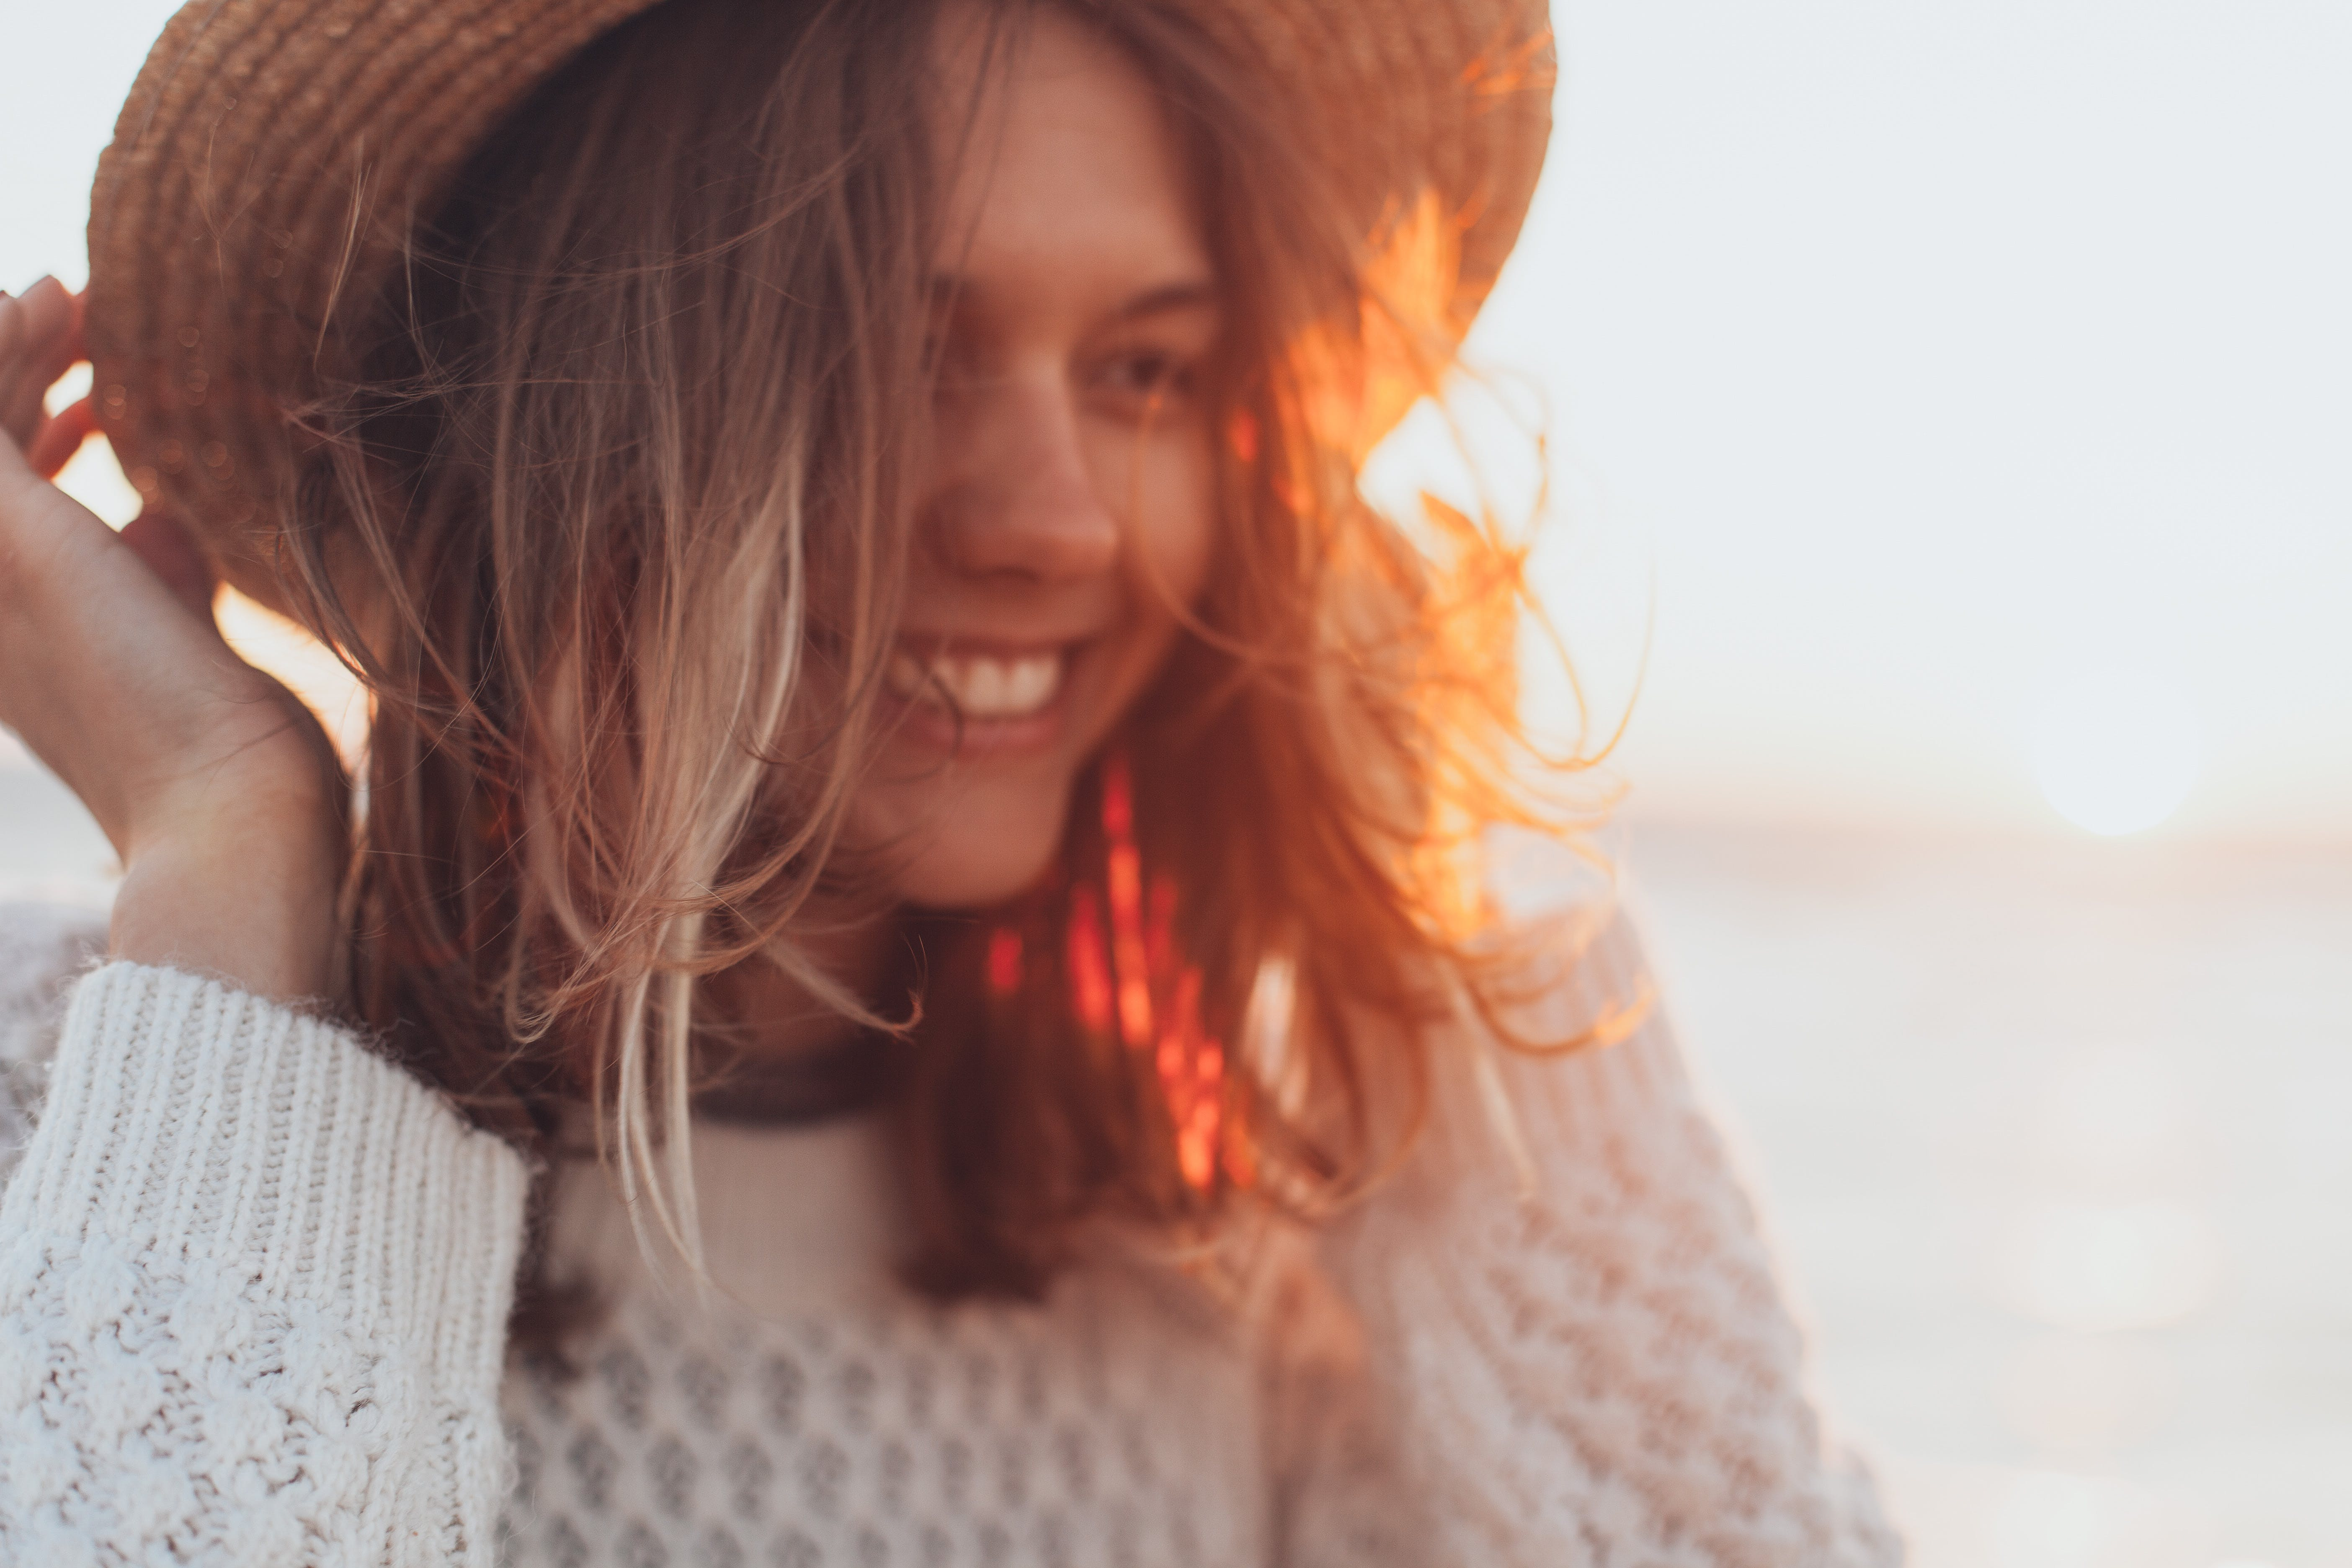 Selective Focus Photo of Woman Wearing White Sweater